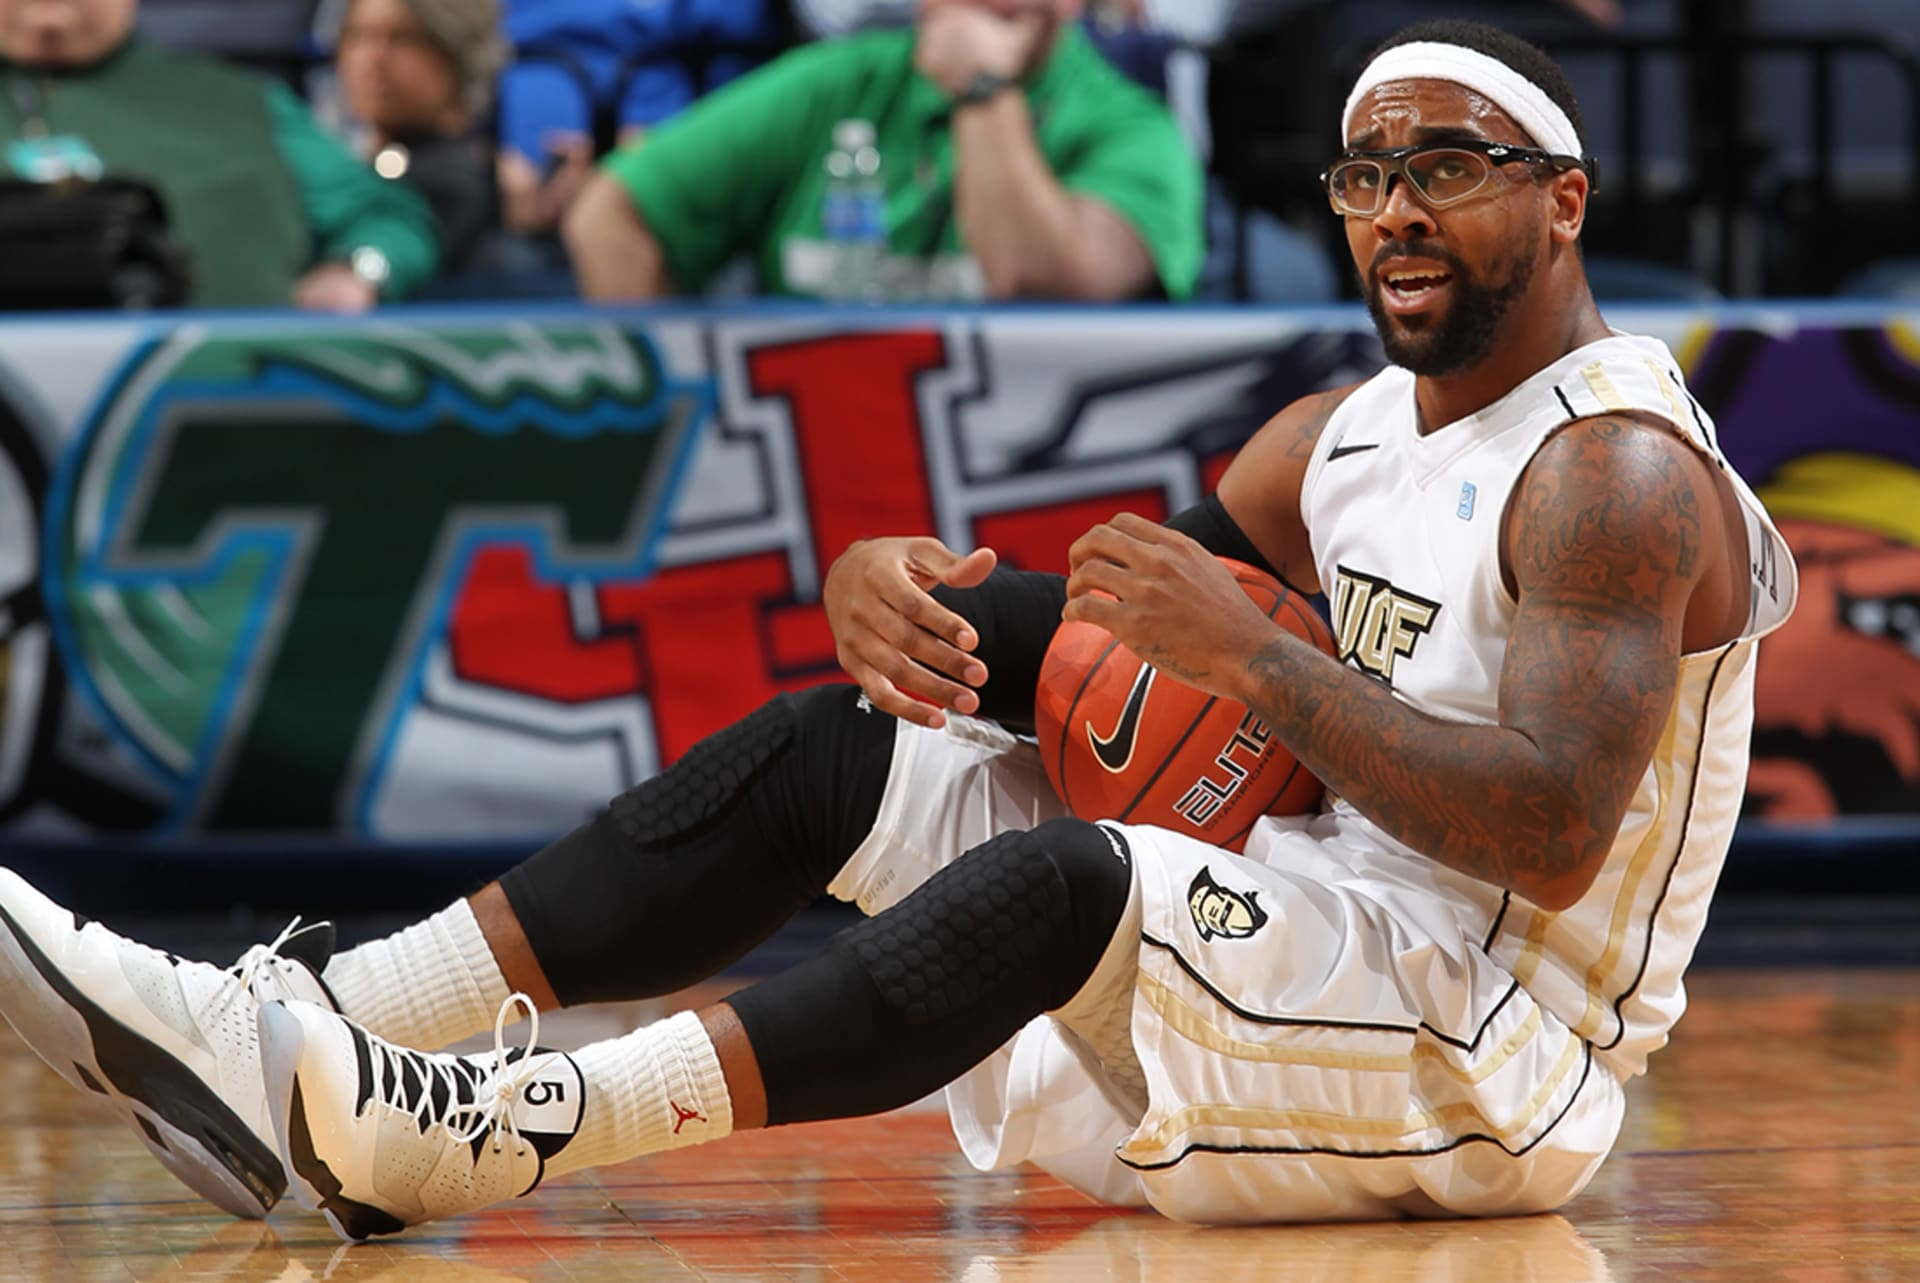 timeless design d6ff2 95dba How Marcus Jordan Wore a Pair of Air Jordans and Cost UCF ...